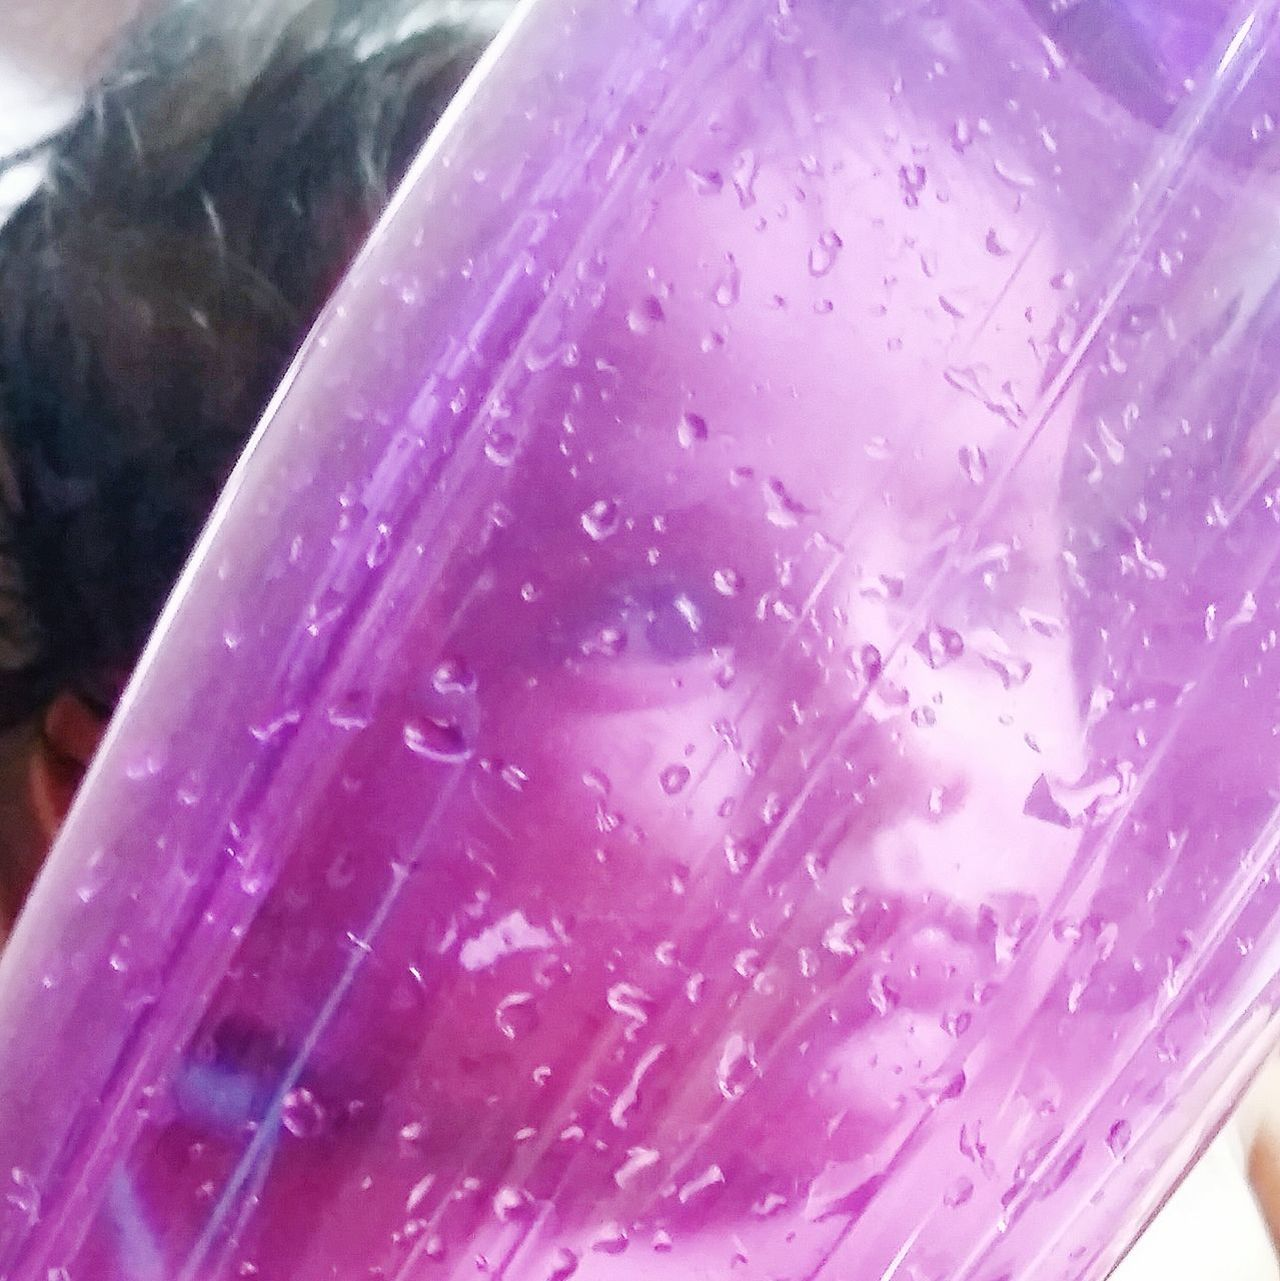 Human Body Part Child Playing With Water Bottle EyeEmNewHere Close-up Indoors  Day Portraitst The Portraitist - 2017 EyeEm Awards Shades Of Purple Portrait Of A Child Babies Only Place Of Heart Playtime